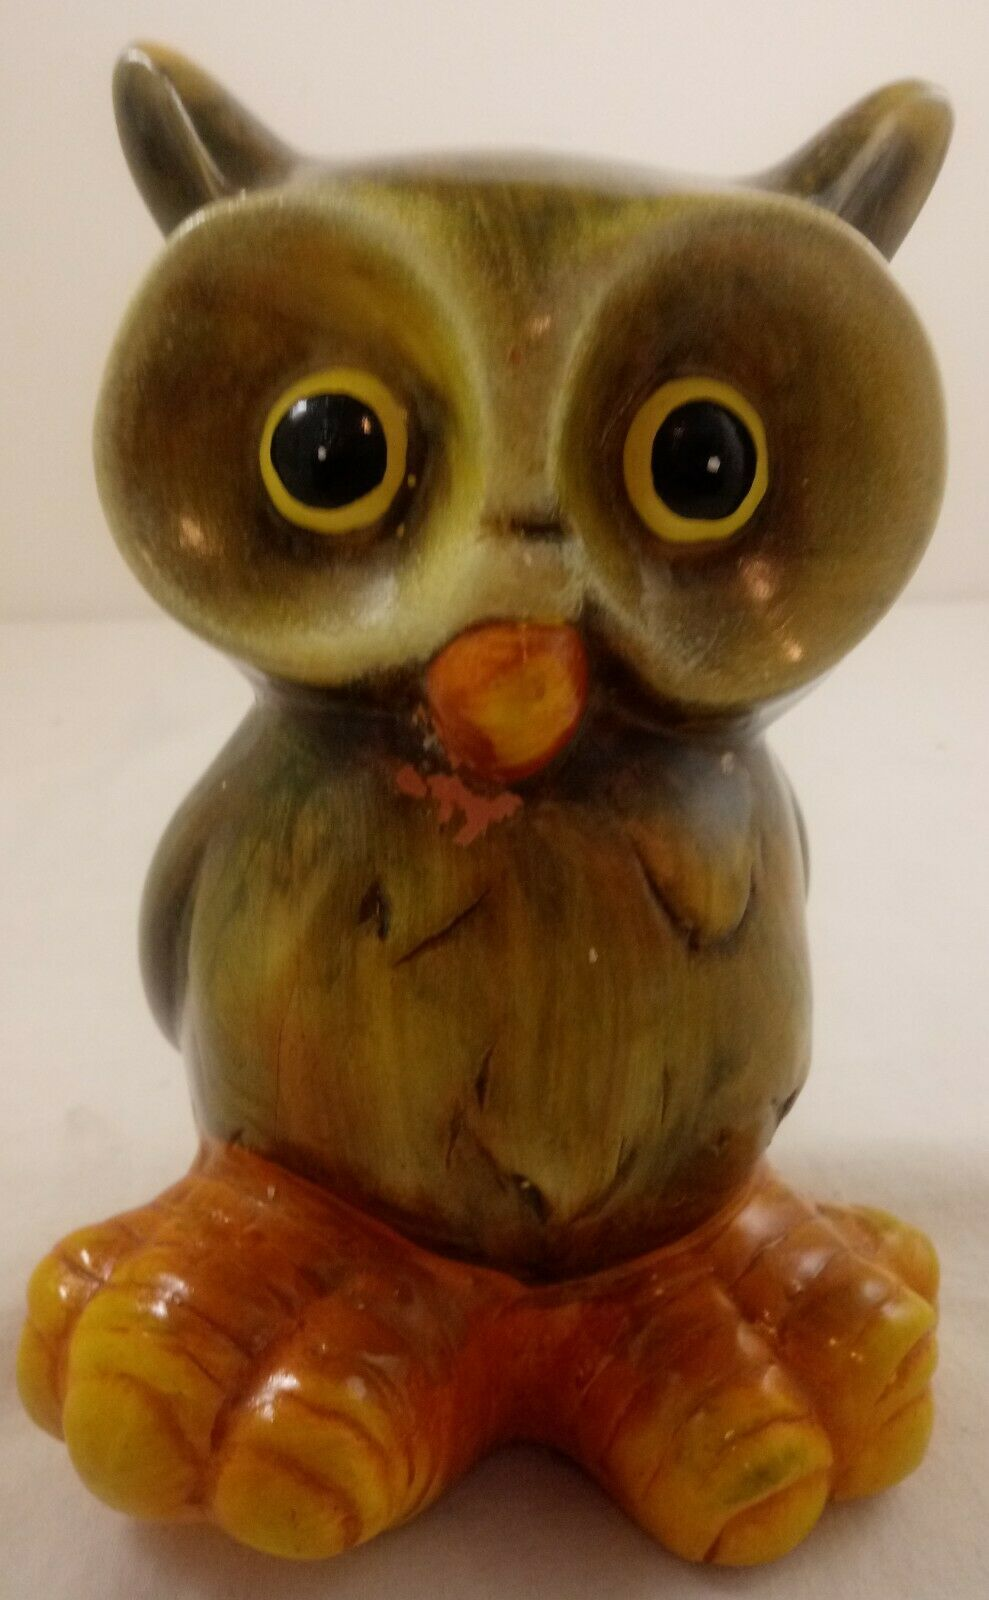 "Primary image for Ceramic Owl Figurine 6"" Big Feet Fall Decor"